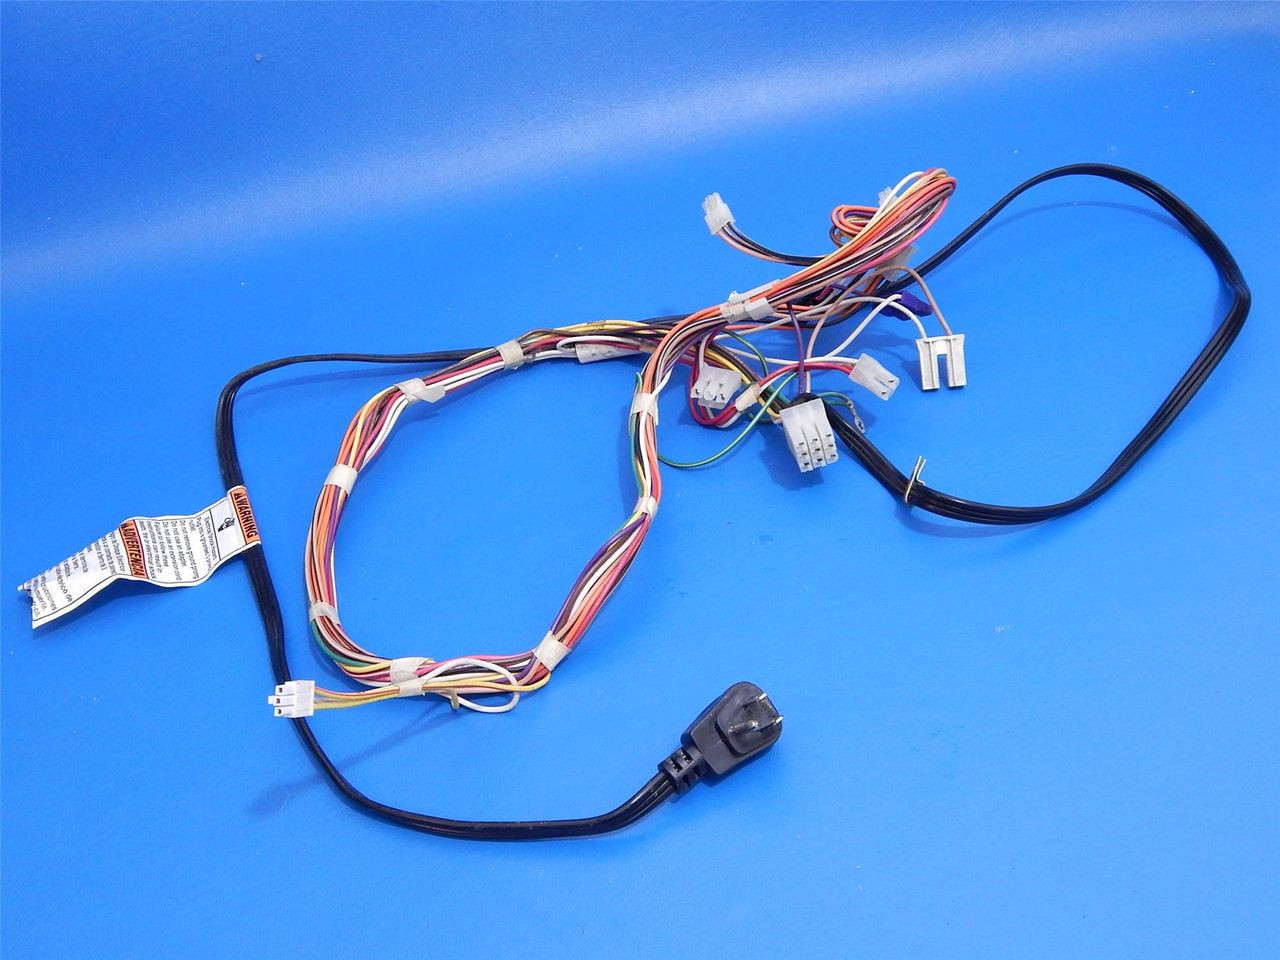 whirlpool sxside refrigerator gs5shaxsl00 wall plug main wire harness  2187947 - ice cold beer & appliance parts